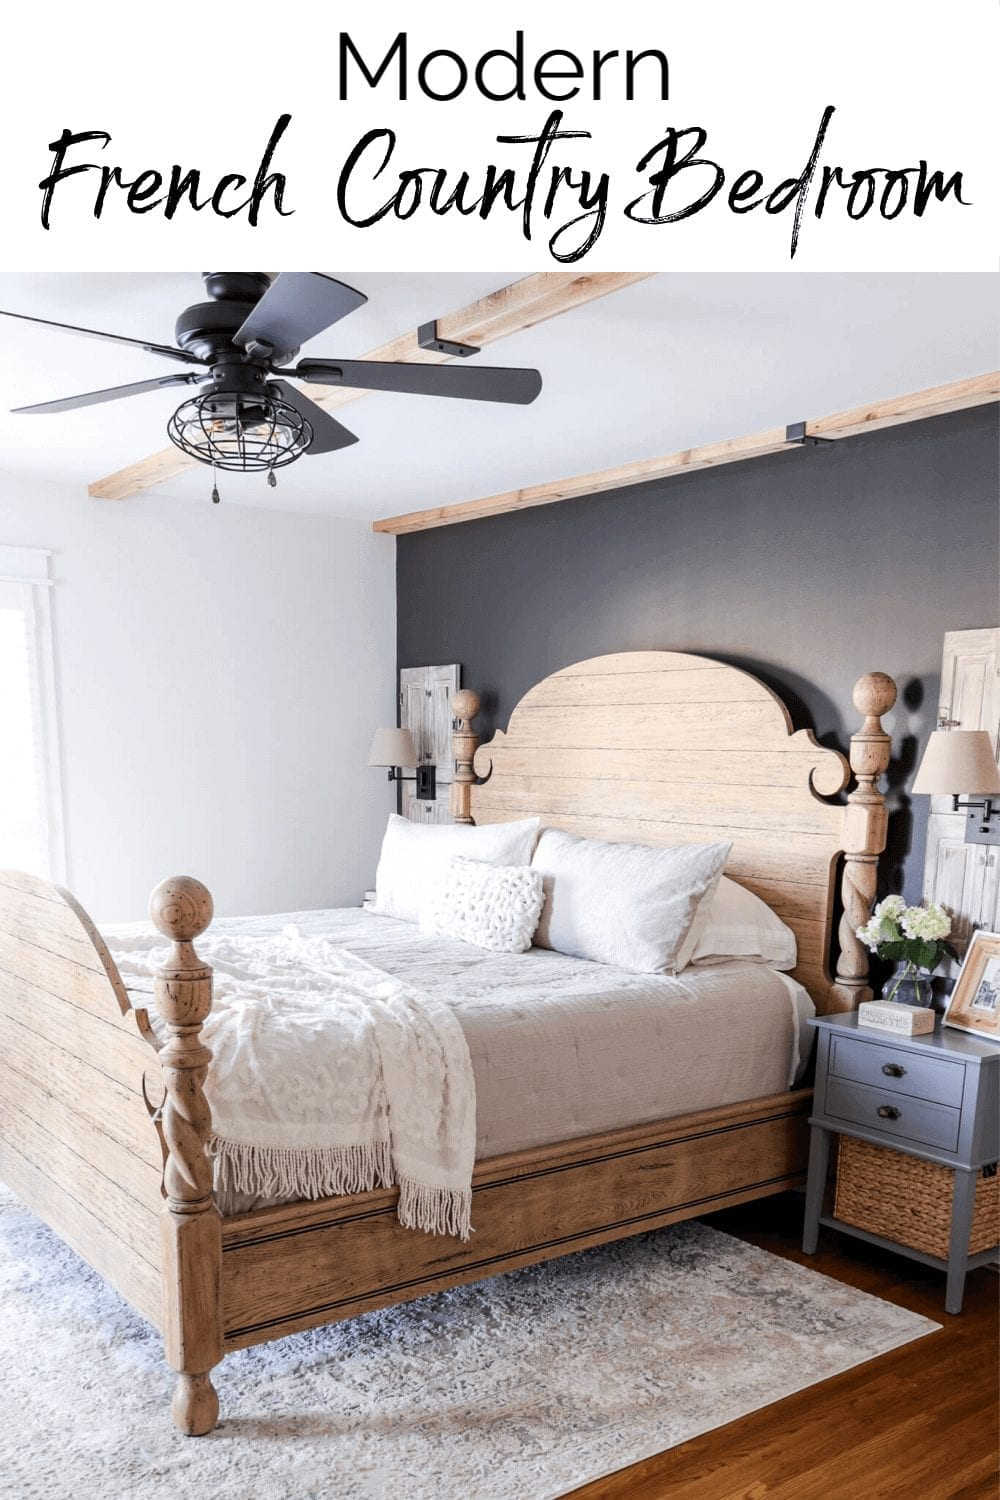 Welcome Home Saturday: Modern French Country Bedroom Refresh | Welcome Home Saturday by popular Alabama lifestyle blog, She Gave It A Go: image of a bedroom with a bed in a wooden farmhouse bed frame with white bedding on a tan and white area rug next to a grey night stand with a wicker basket and vase filled with faux white hydrangeas and a grey accent wall and farmhouse light and fan fixture.